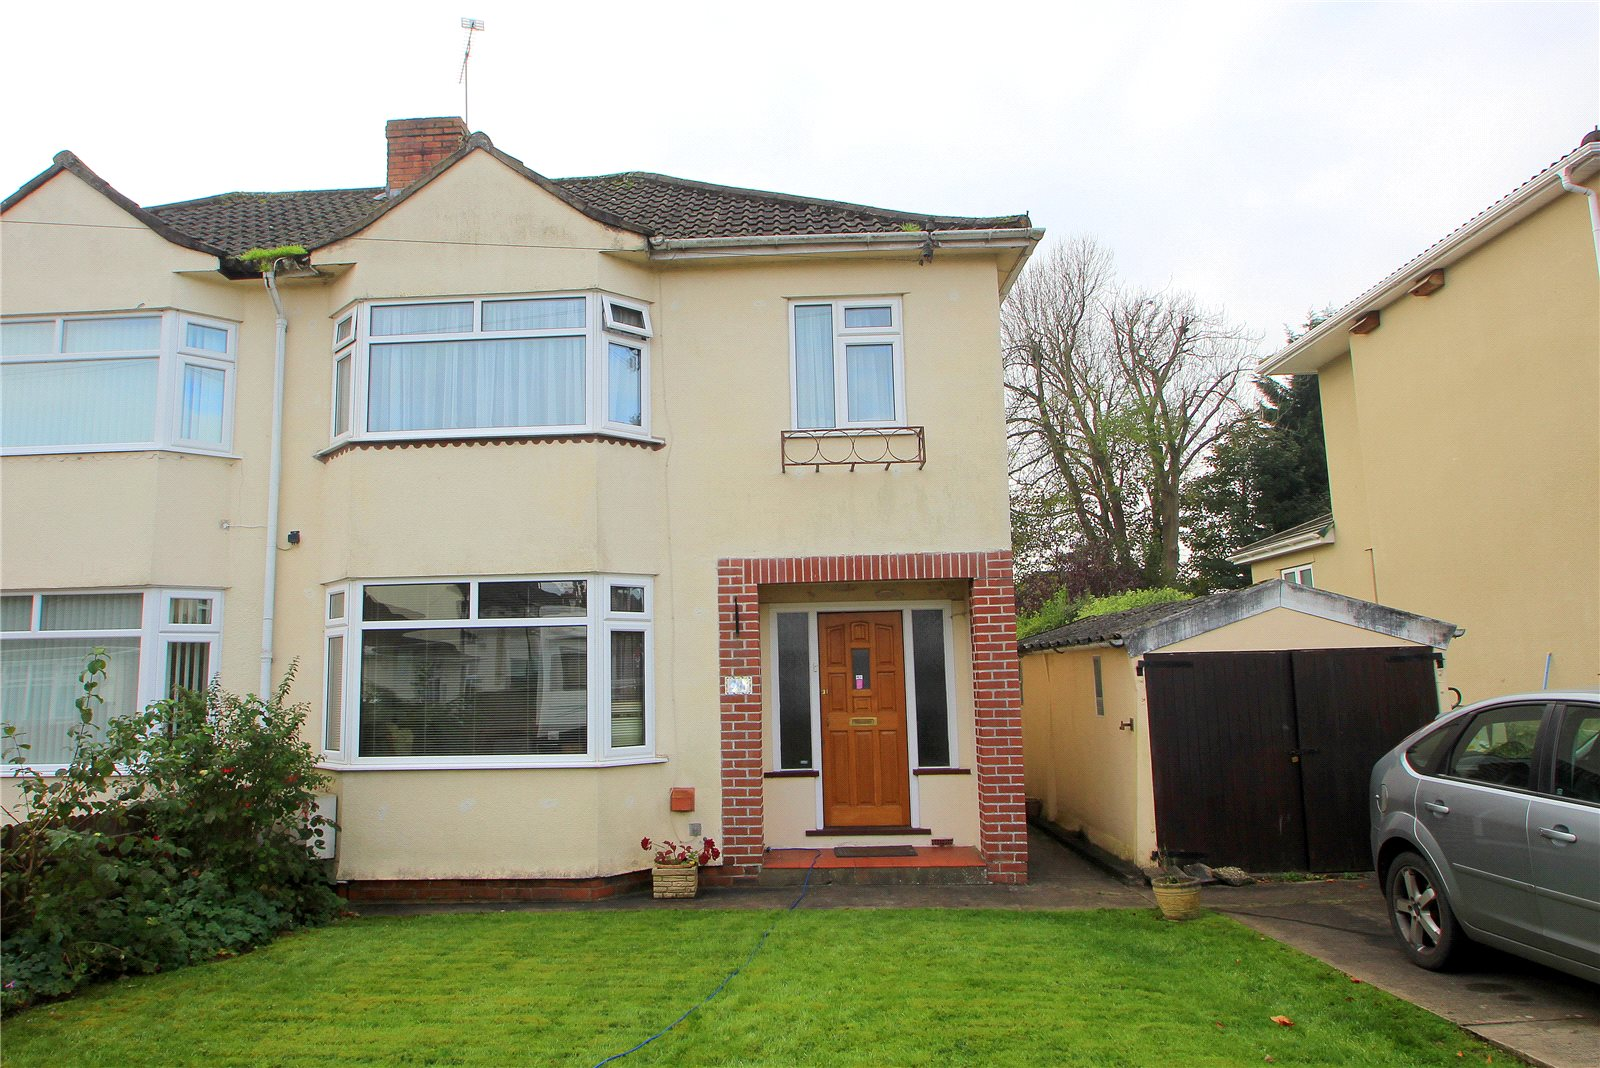 3 Bedrooms Semi Detached House for sale in Fairway Brislington Bristol BS4